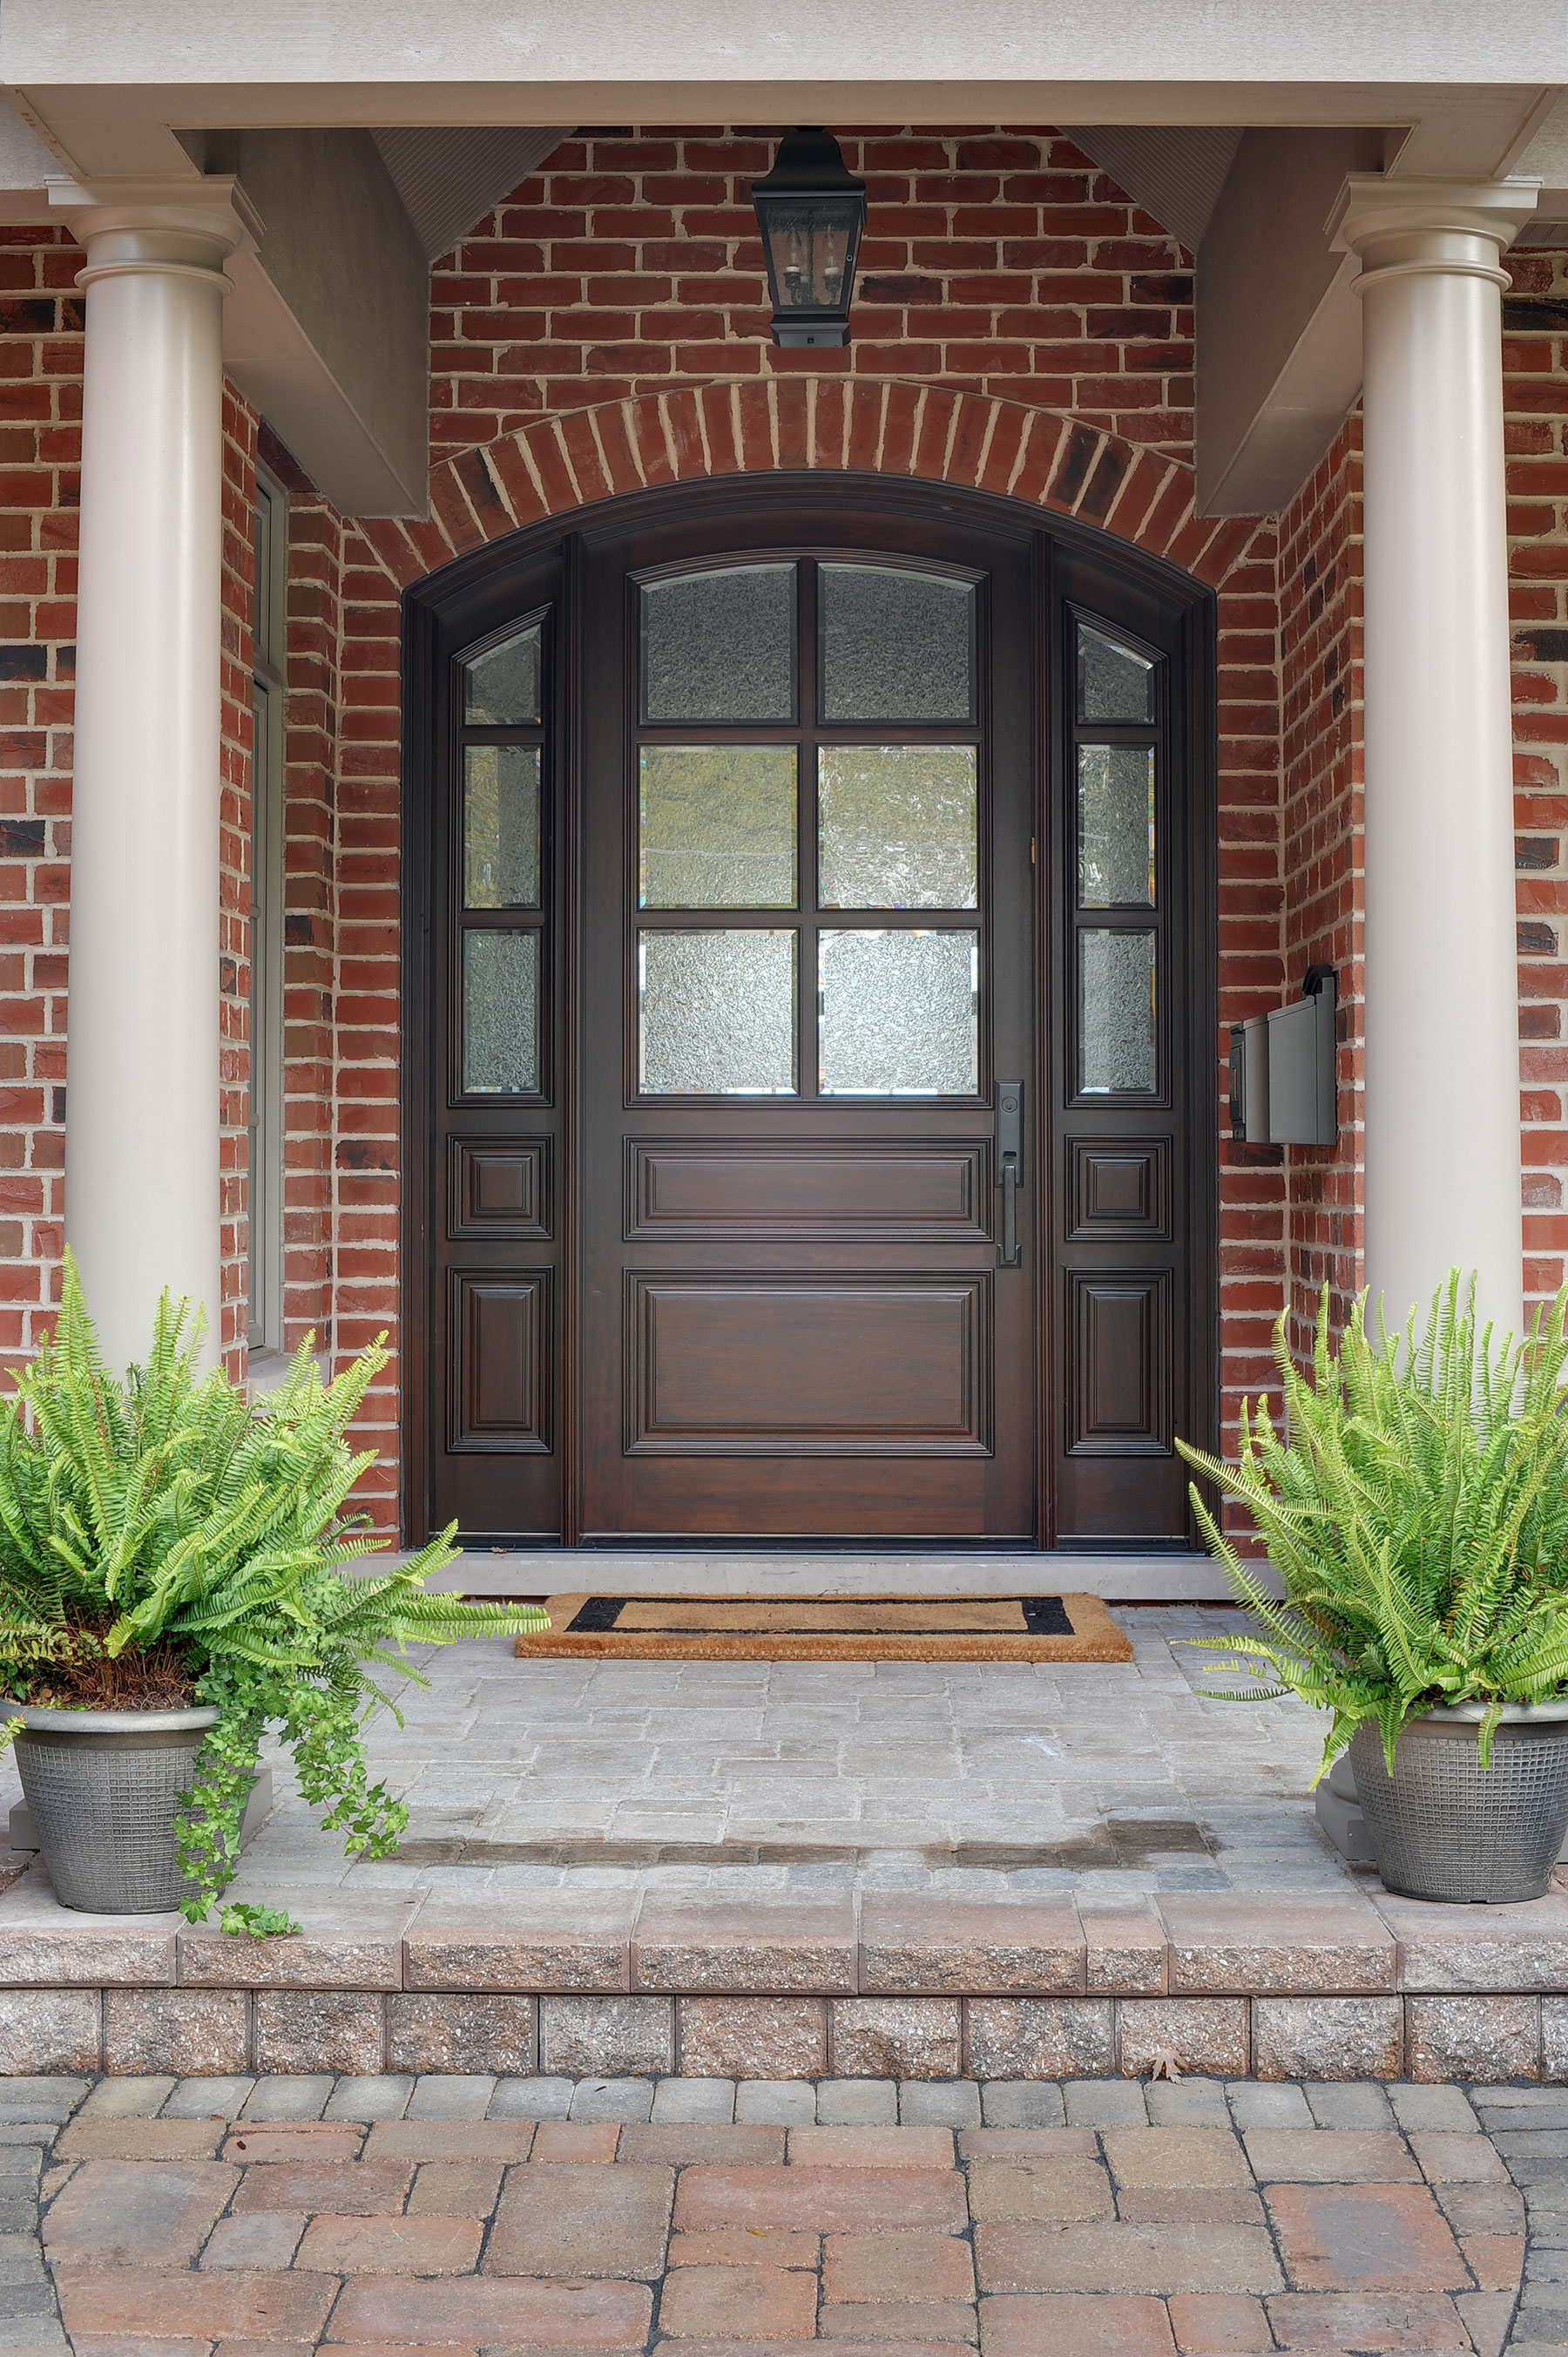 Solid Wood Front Entry Doors in-Stock | Classic Collection Solid Wood Arched Entry Door with Sidelites DB-652W 2SL - Glenview Doors - Custom Doors in Chicago